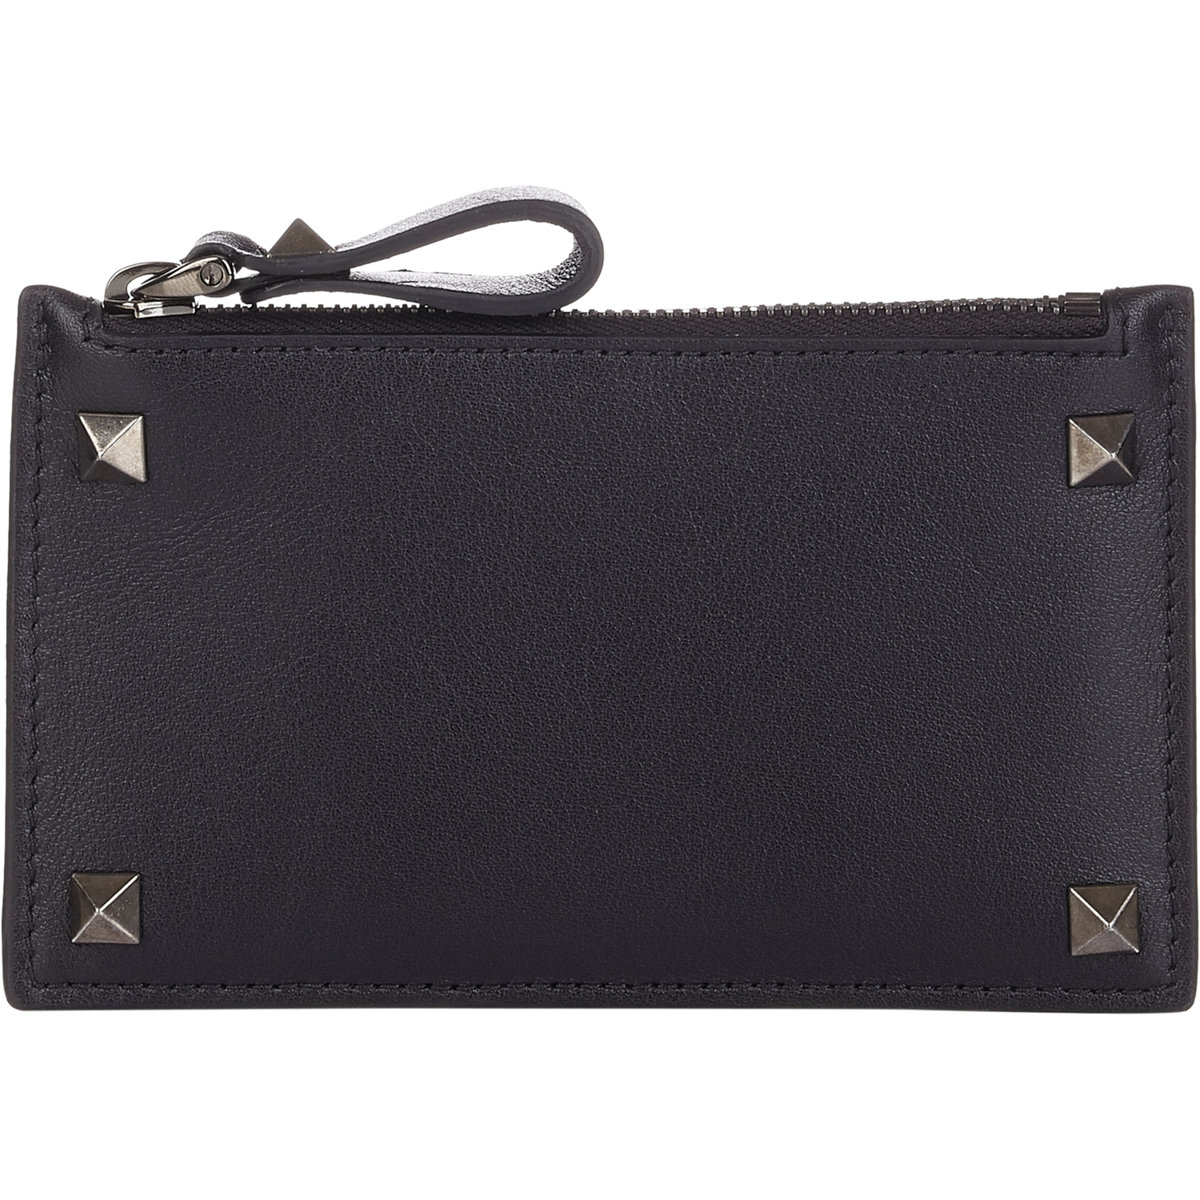 369b073ed5cb1 Valentino Rockstud Zip Card Case in Black for Men - Lyst